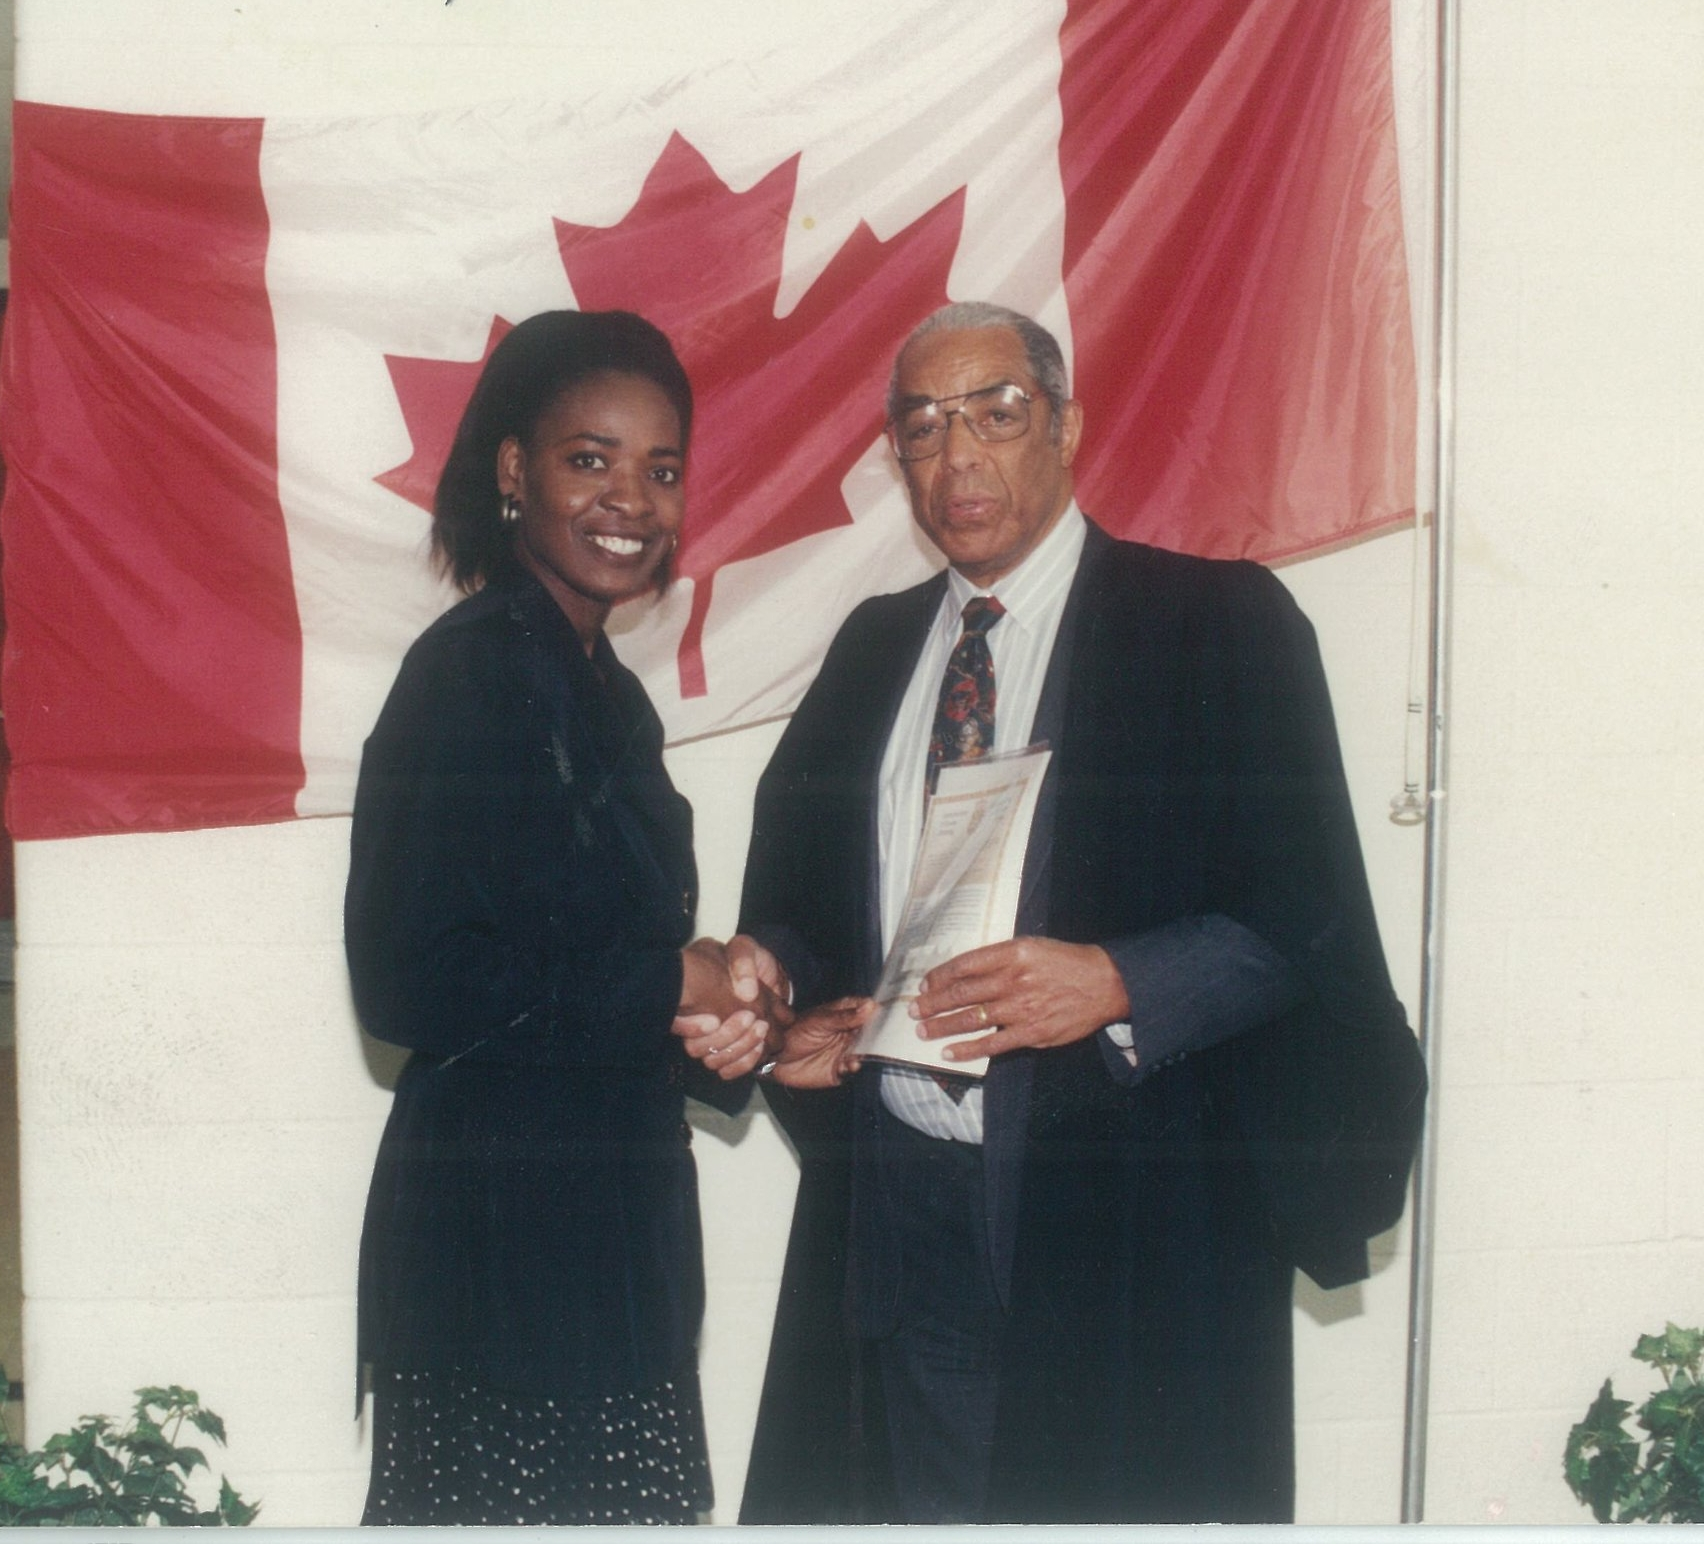 Jamaican Diane Fuller receives her Canadian citizenship from Bromley Armstrong at a special ceremony